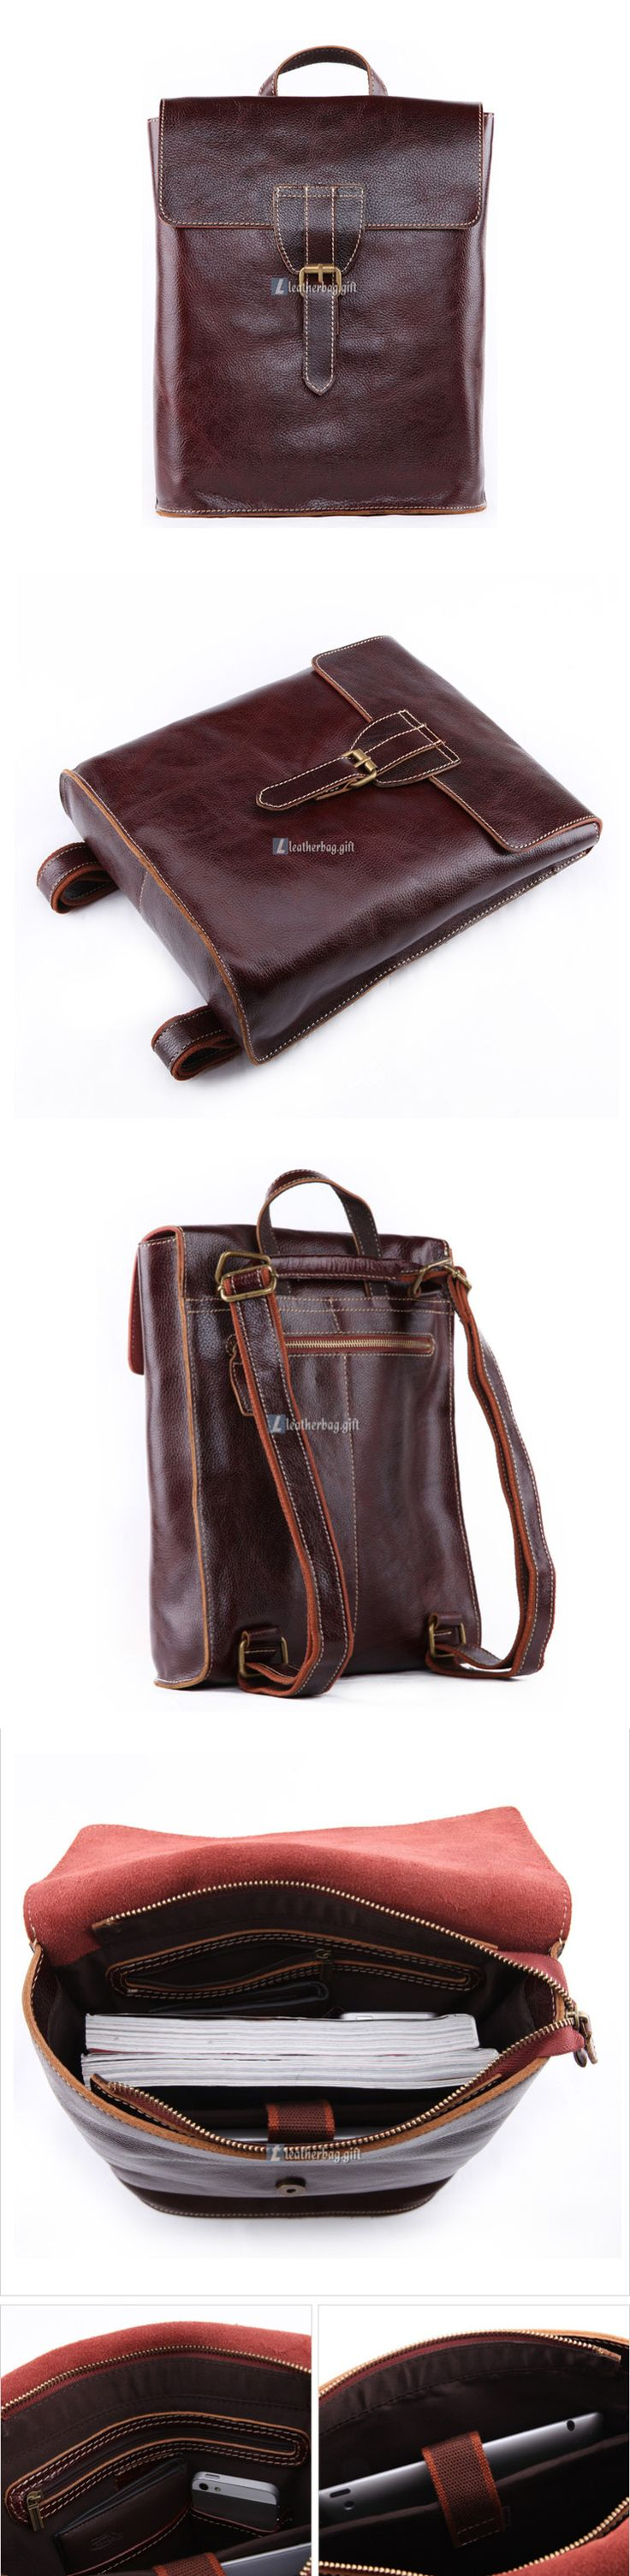 $195 Womens Leather Laptop Backpack Stylish Backpack